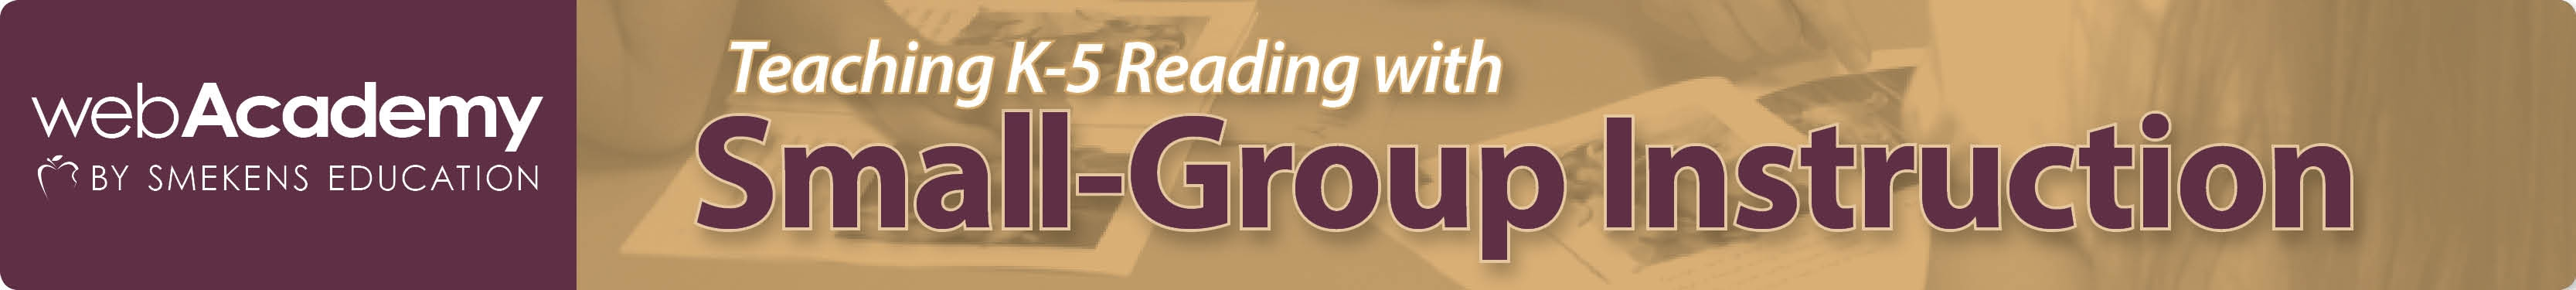 Teaching K-5 Reading with Small-Group Instruction